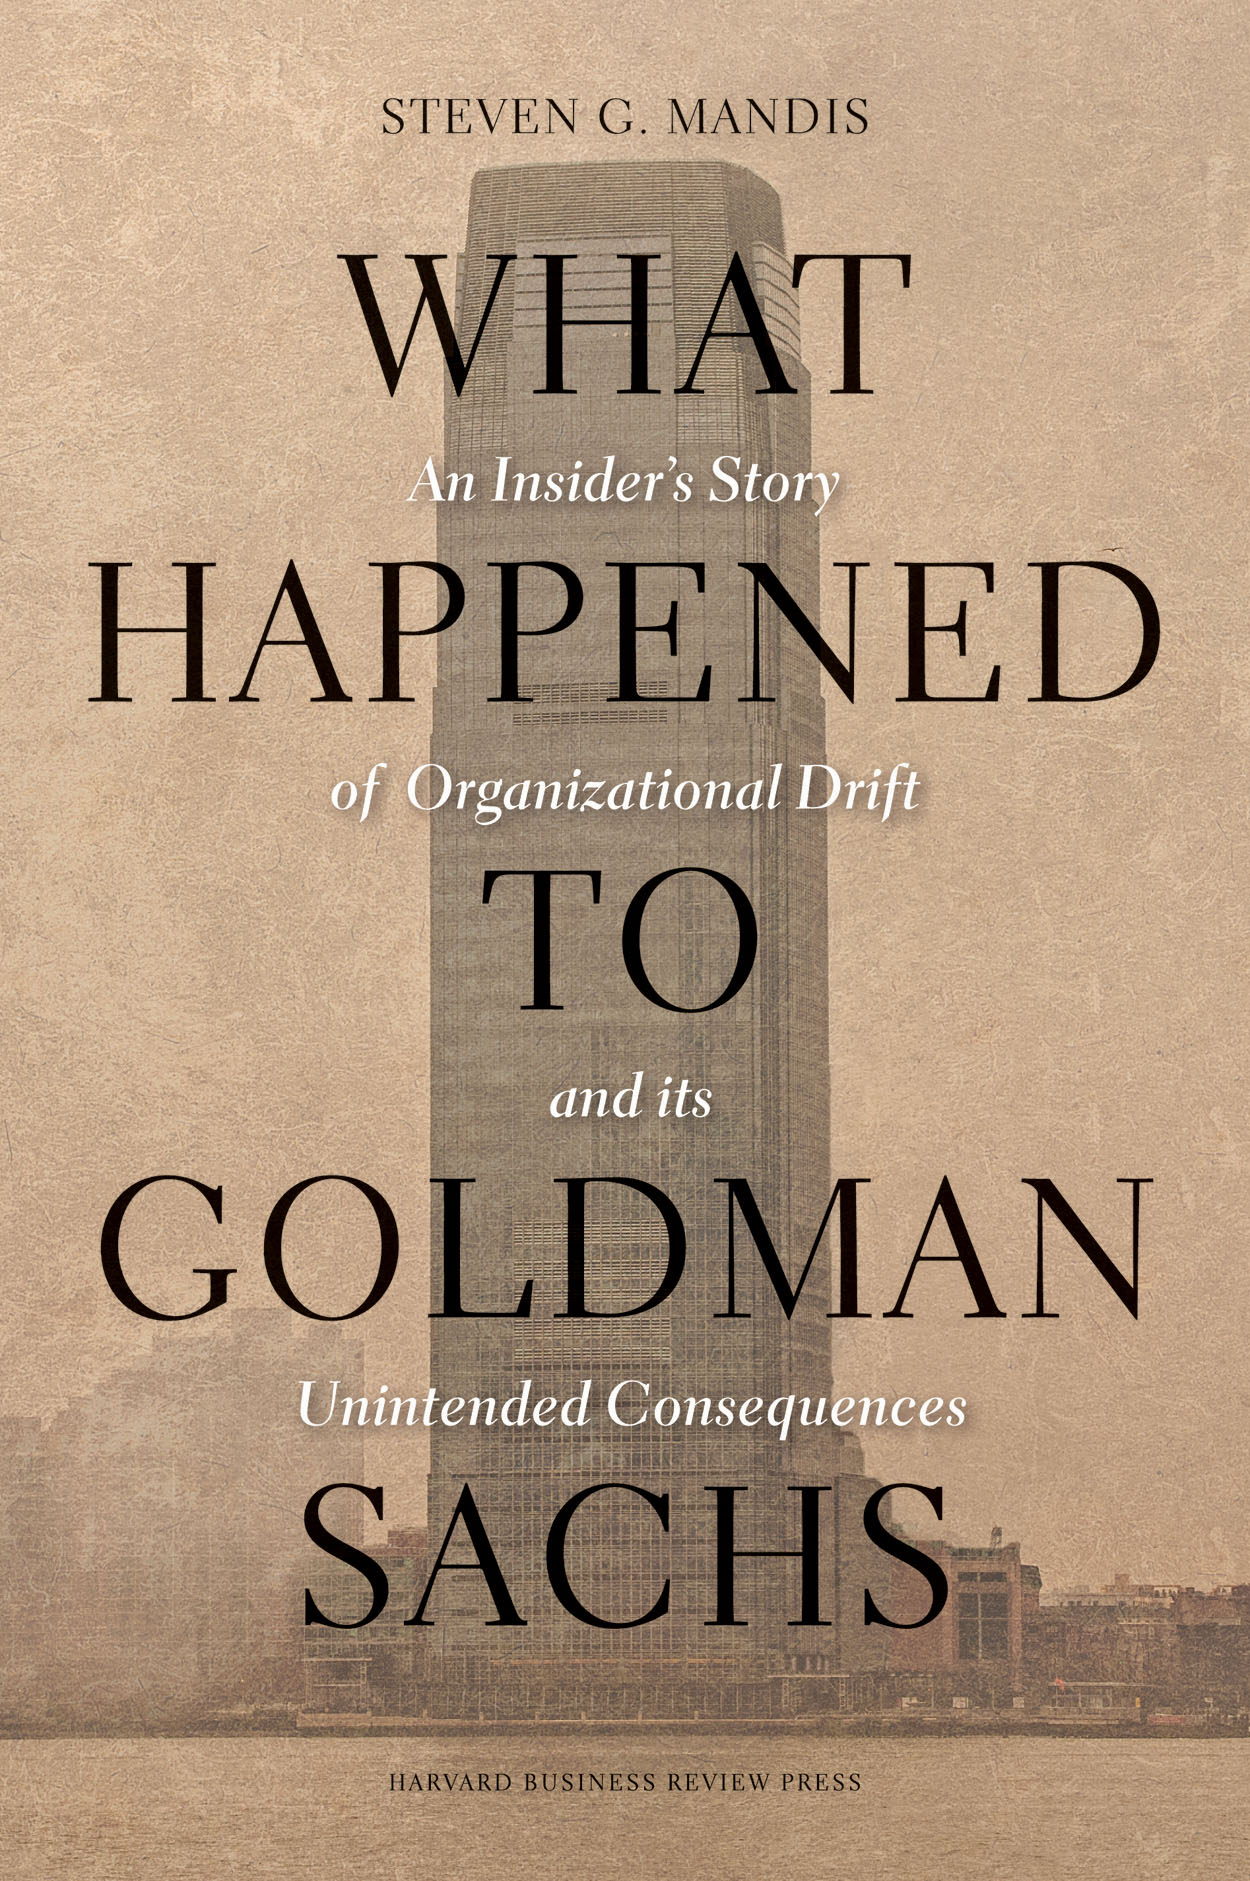 Steven G. Mandis, author of What Happened to Goldman Sachs, in conversation with Justin Fox